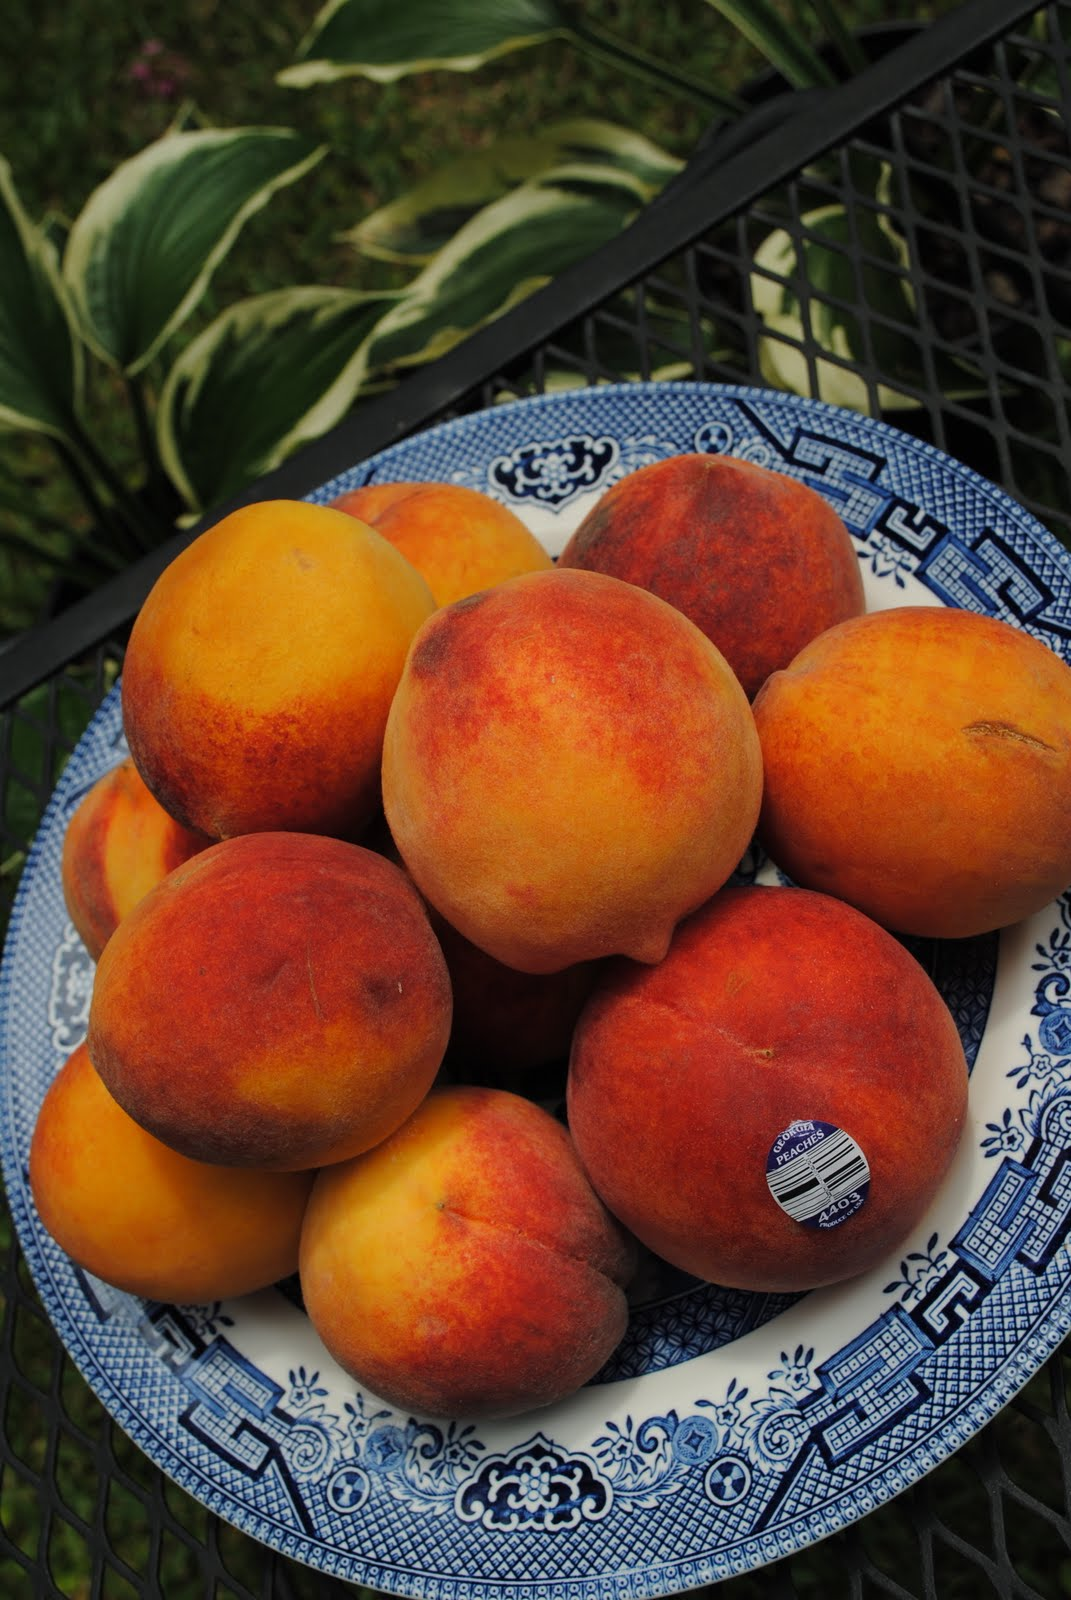 Harvesting Peaches - How And When Should A Peach Be Harvested